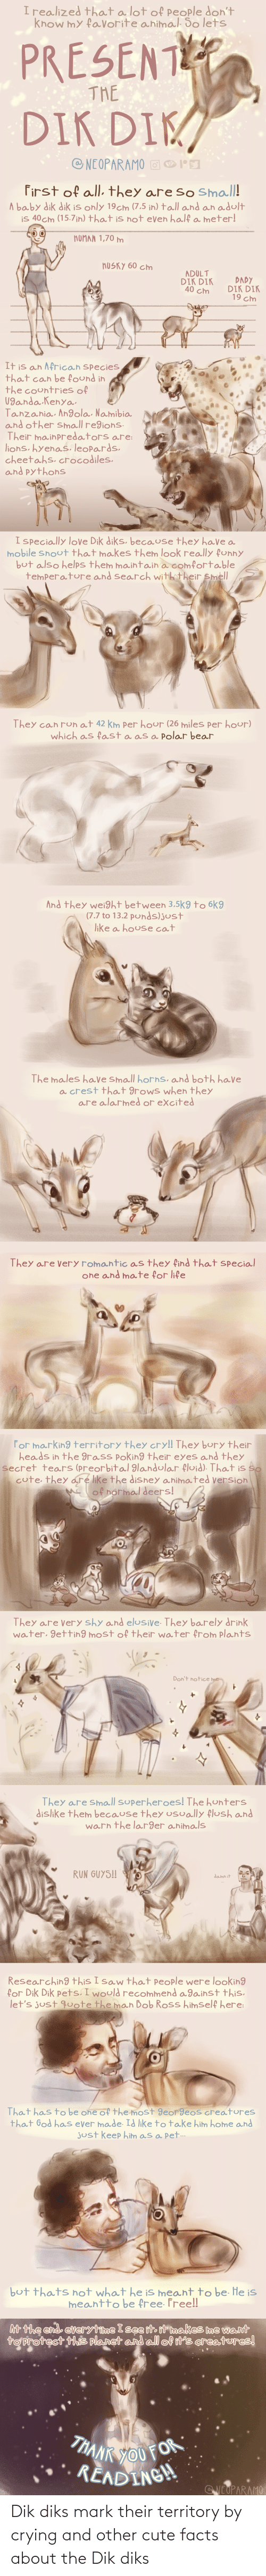 mark: Dik diks mark their territory by crying and other cute facts about the Dik diks